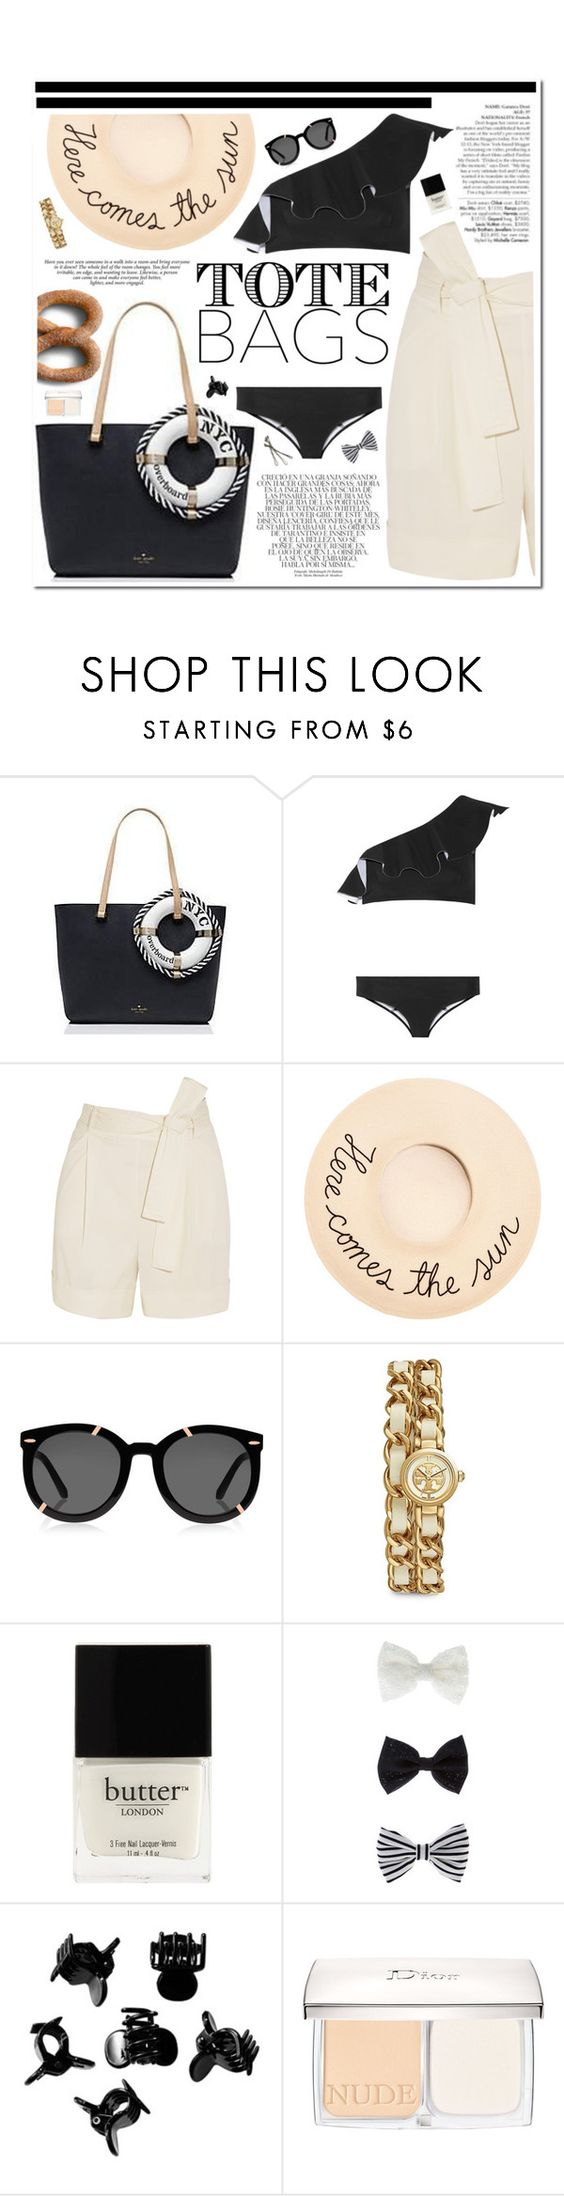 """Untitled #361"" by piccolamarisa ❤ liked on Polyvore featuring Kate Spade, Avenue, Whiteley, Lisa Marie Fernandez, La Perla, Eugenia Kim, Karen Walker, Tory Burch, Butter London and Accessorize"